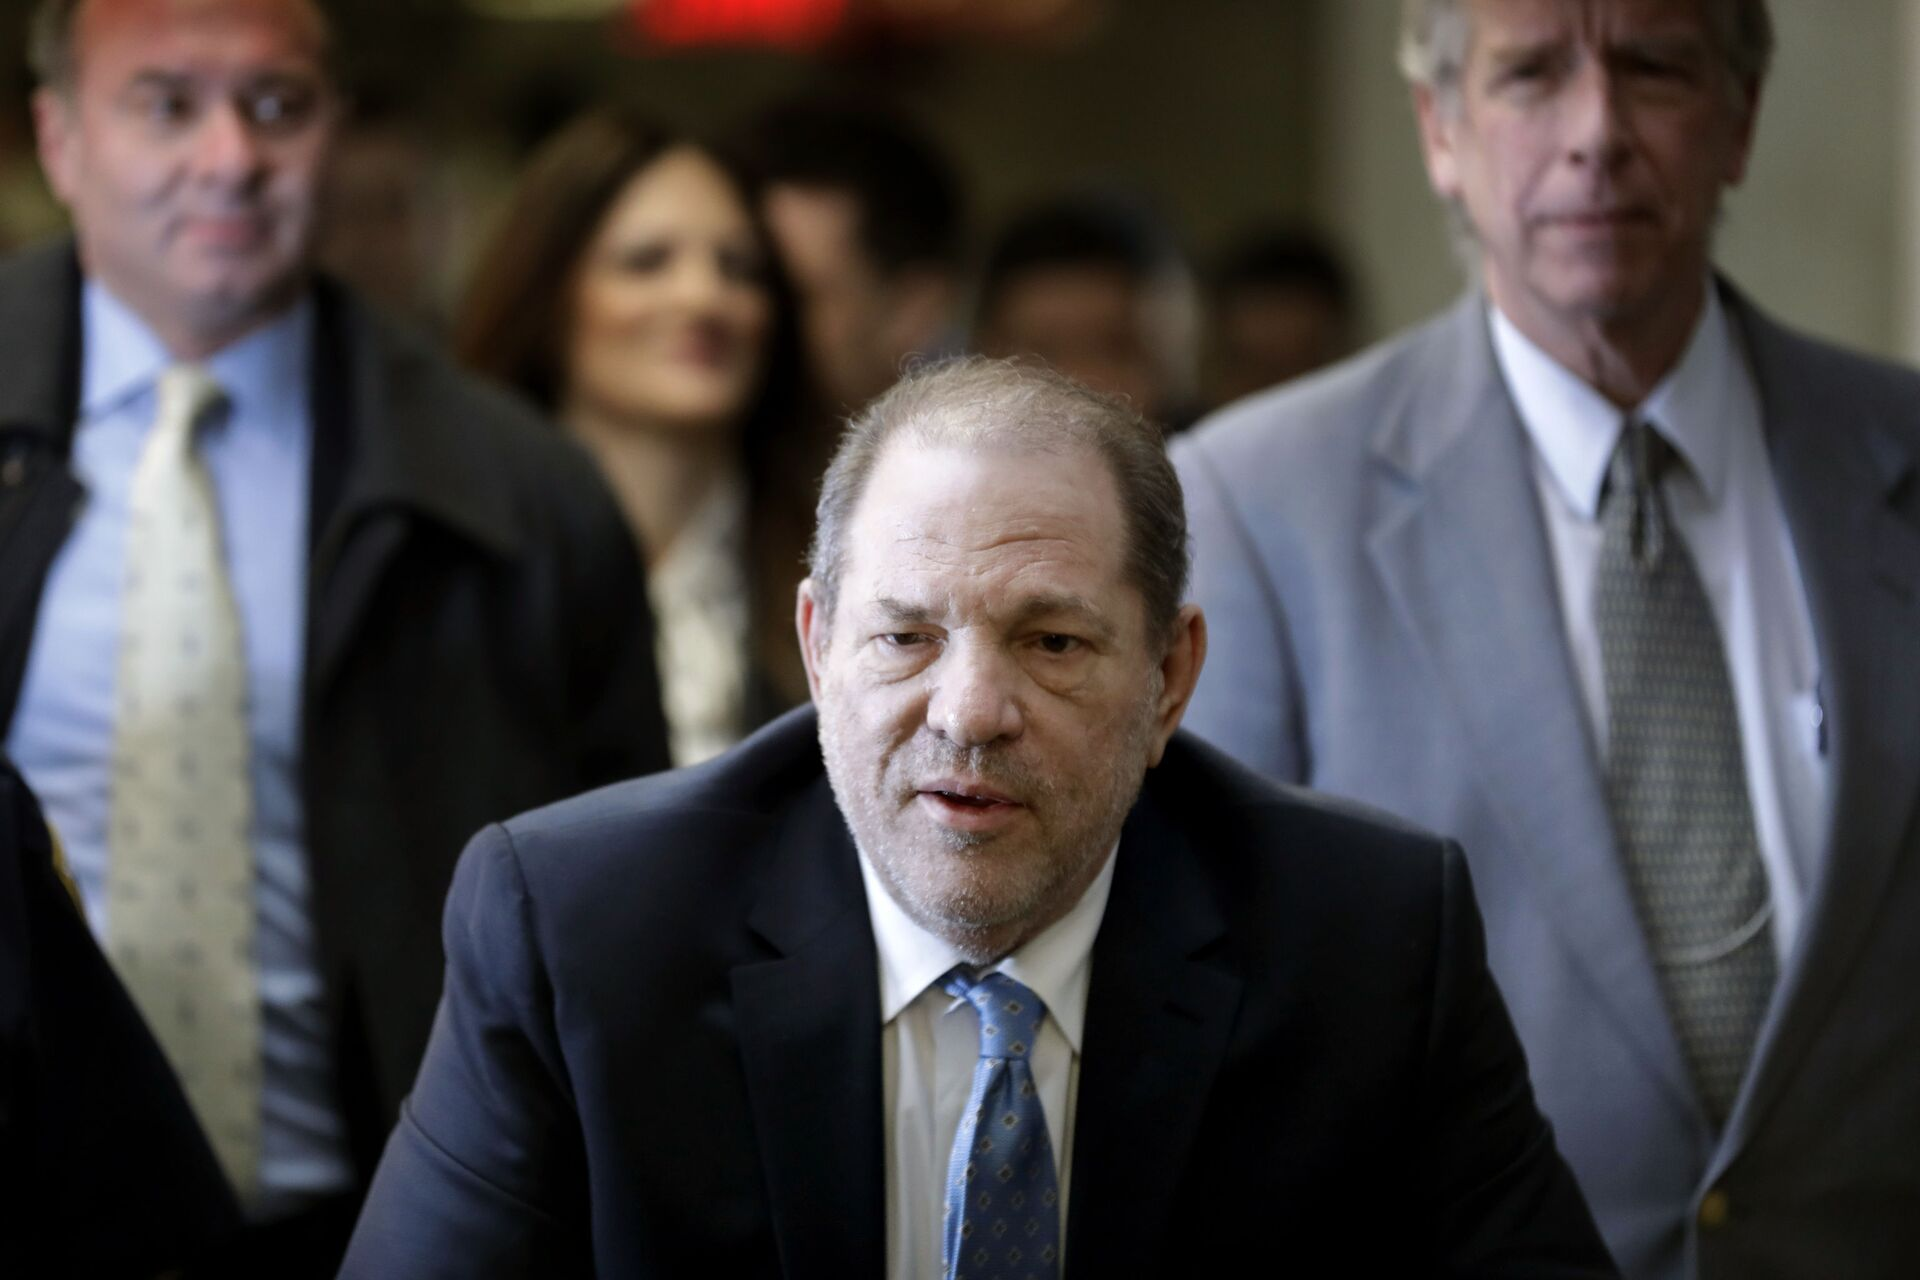 In this Feb. 24, 2020, file photo, Harvey Weinstein arrives at a Manhattan courthouse as jury deliberations continue in his rape trial in New York. The disgraced Hollywood film mogul and convicted rapist is asking a bankruptcy judge in Delaware to allow him to pursue arbitration in New York over what he claims is his wrongful termination from the company he co-founded. - Sputnik International, 1920, 28.09.2021